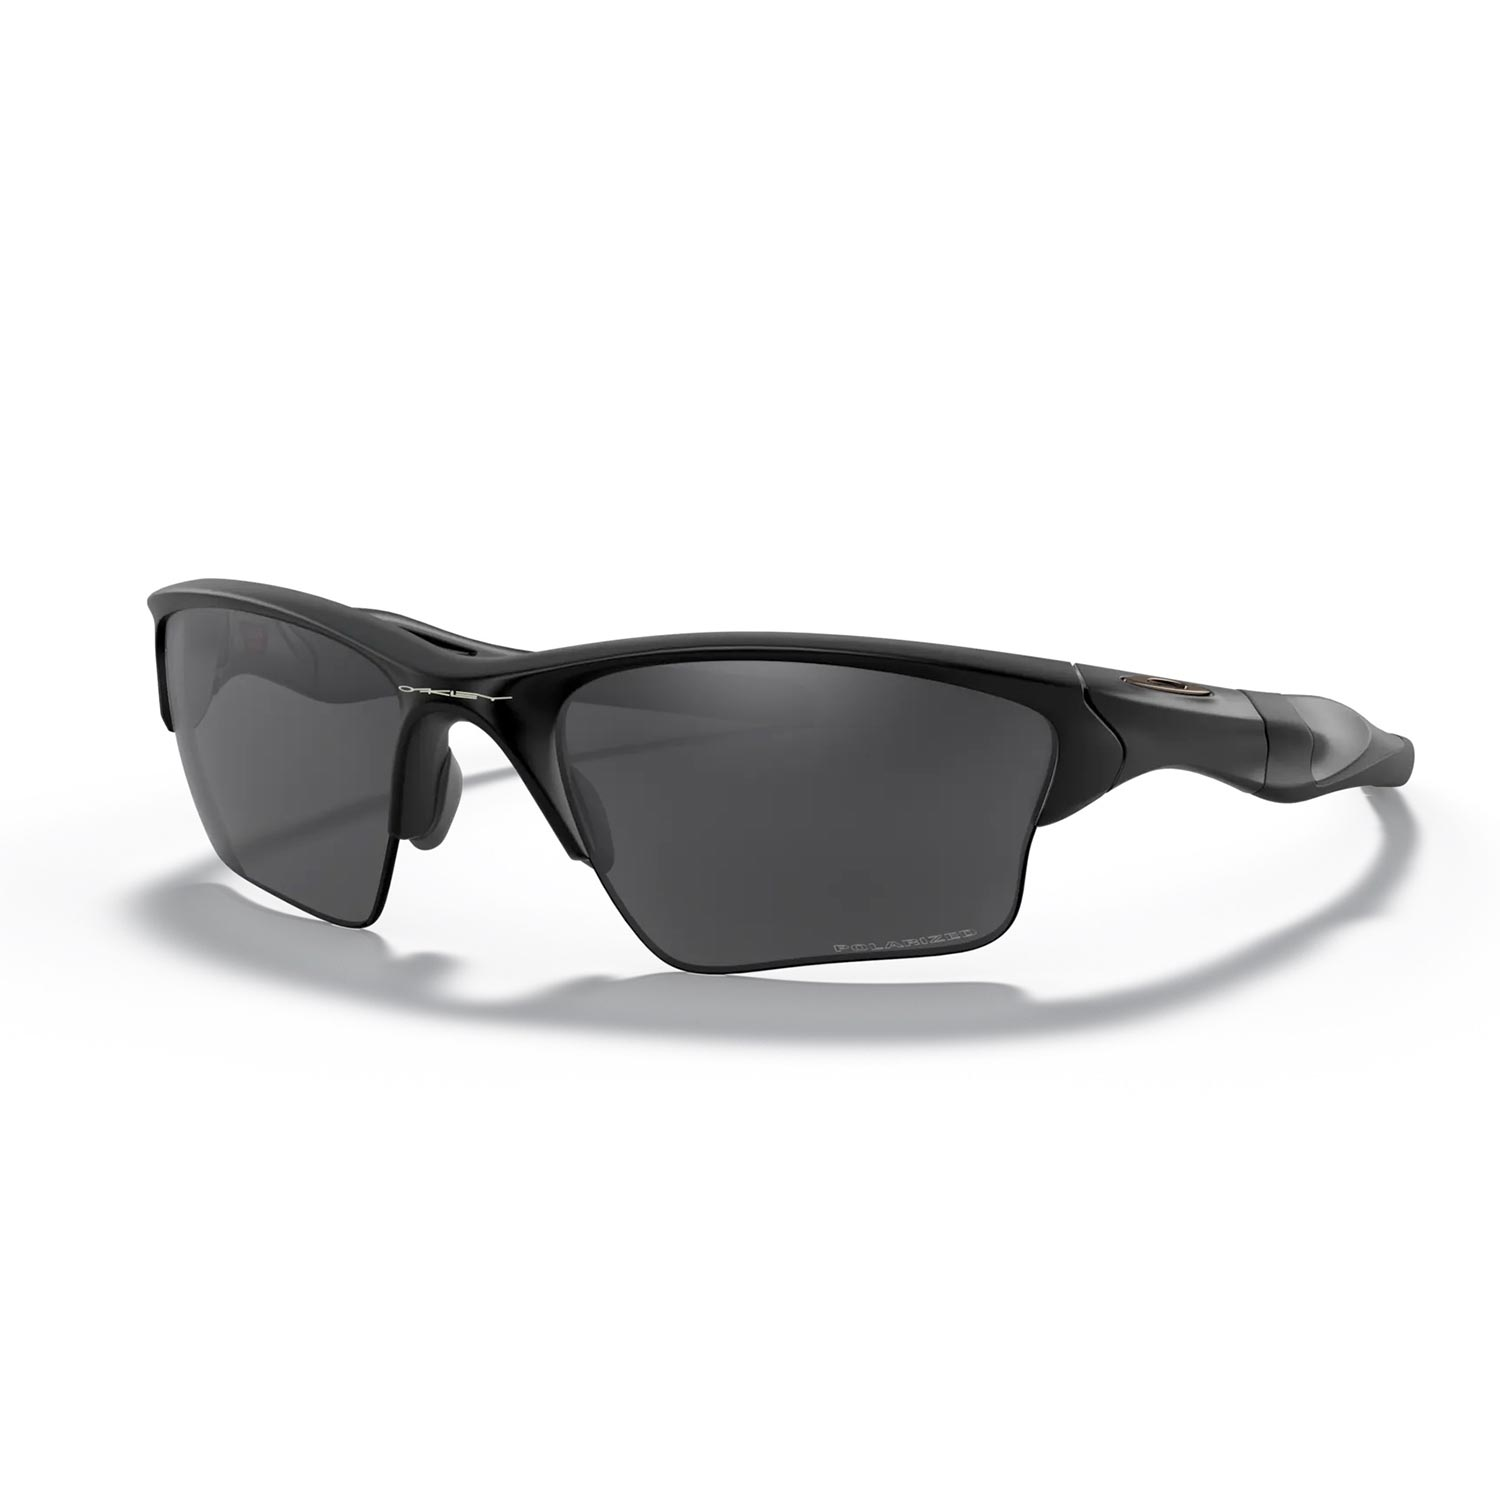 b2a0fed9fb2 ... OAKLEY SI HALF JACKET XLJ 2.0 SUNGLASSES ...